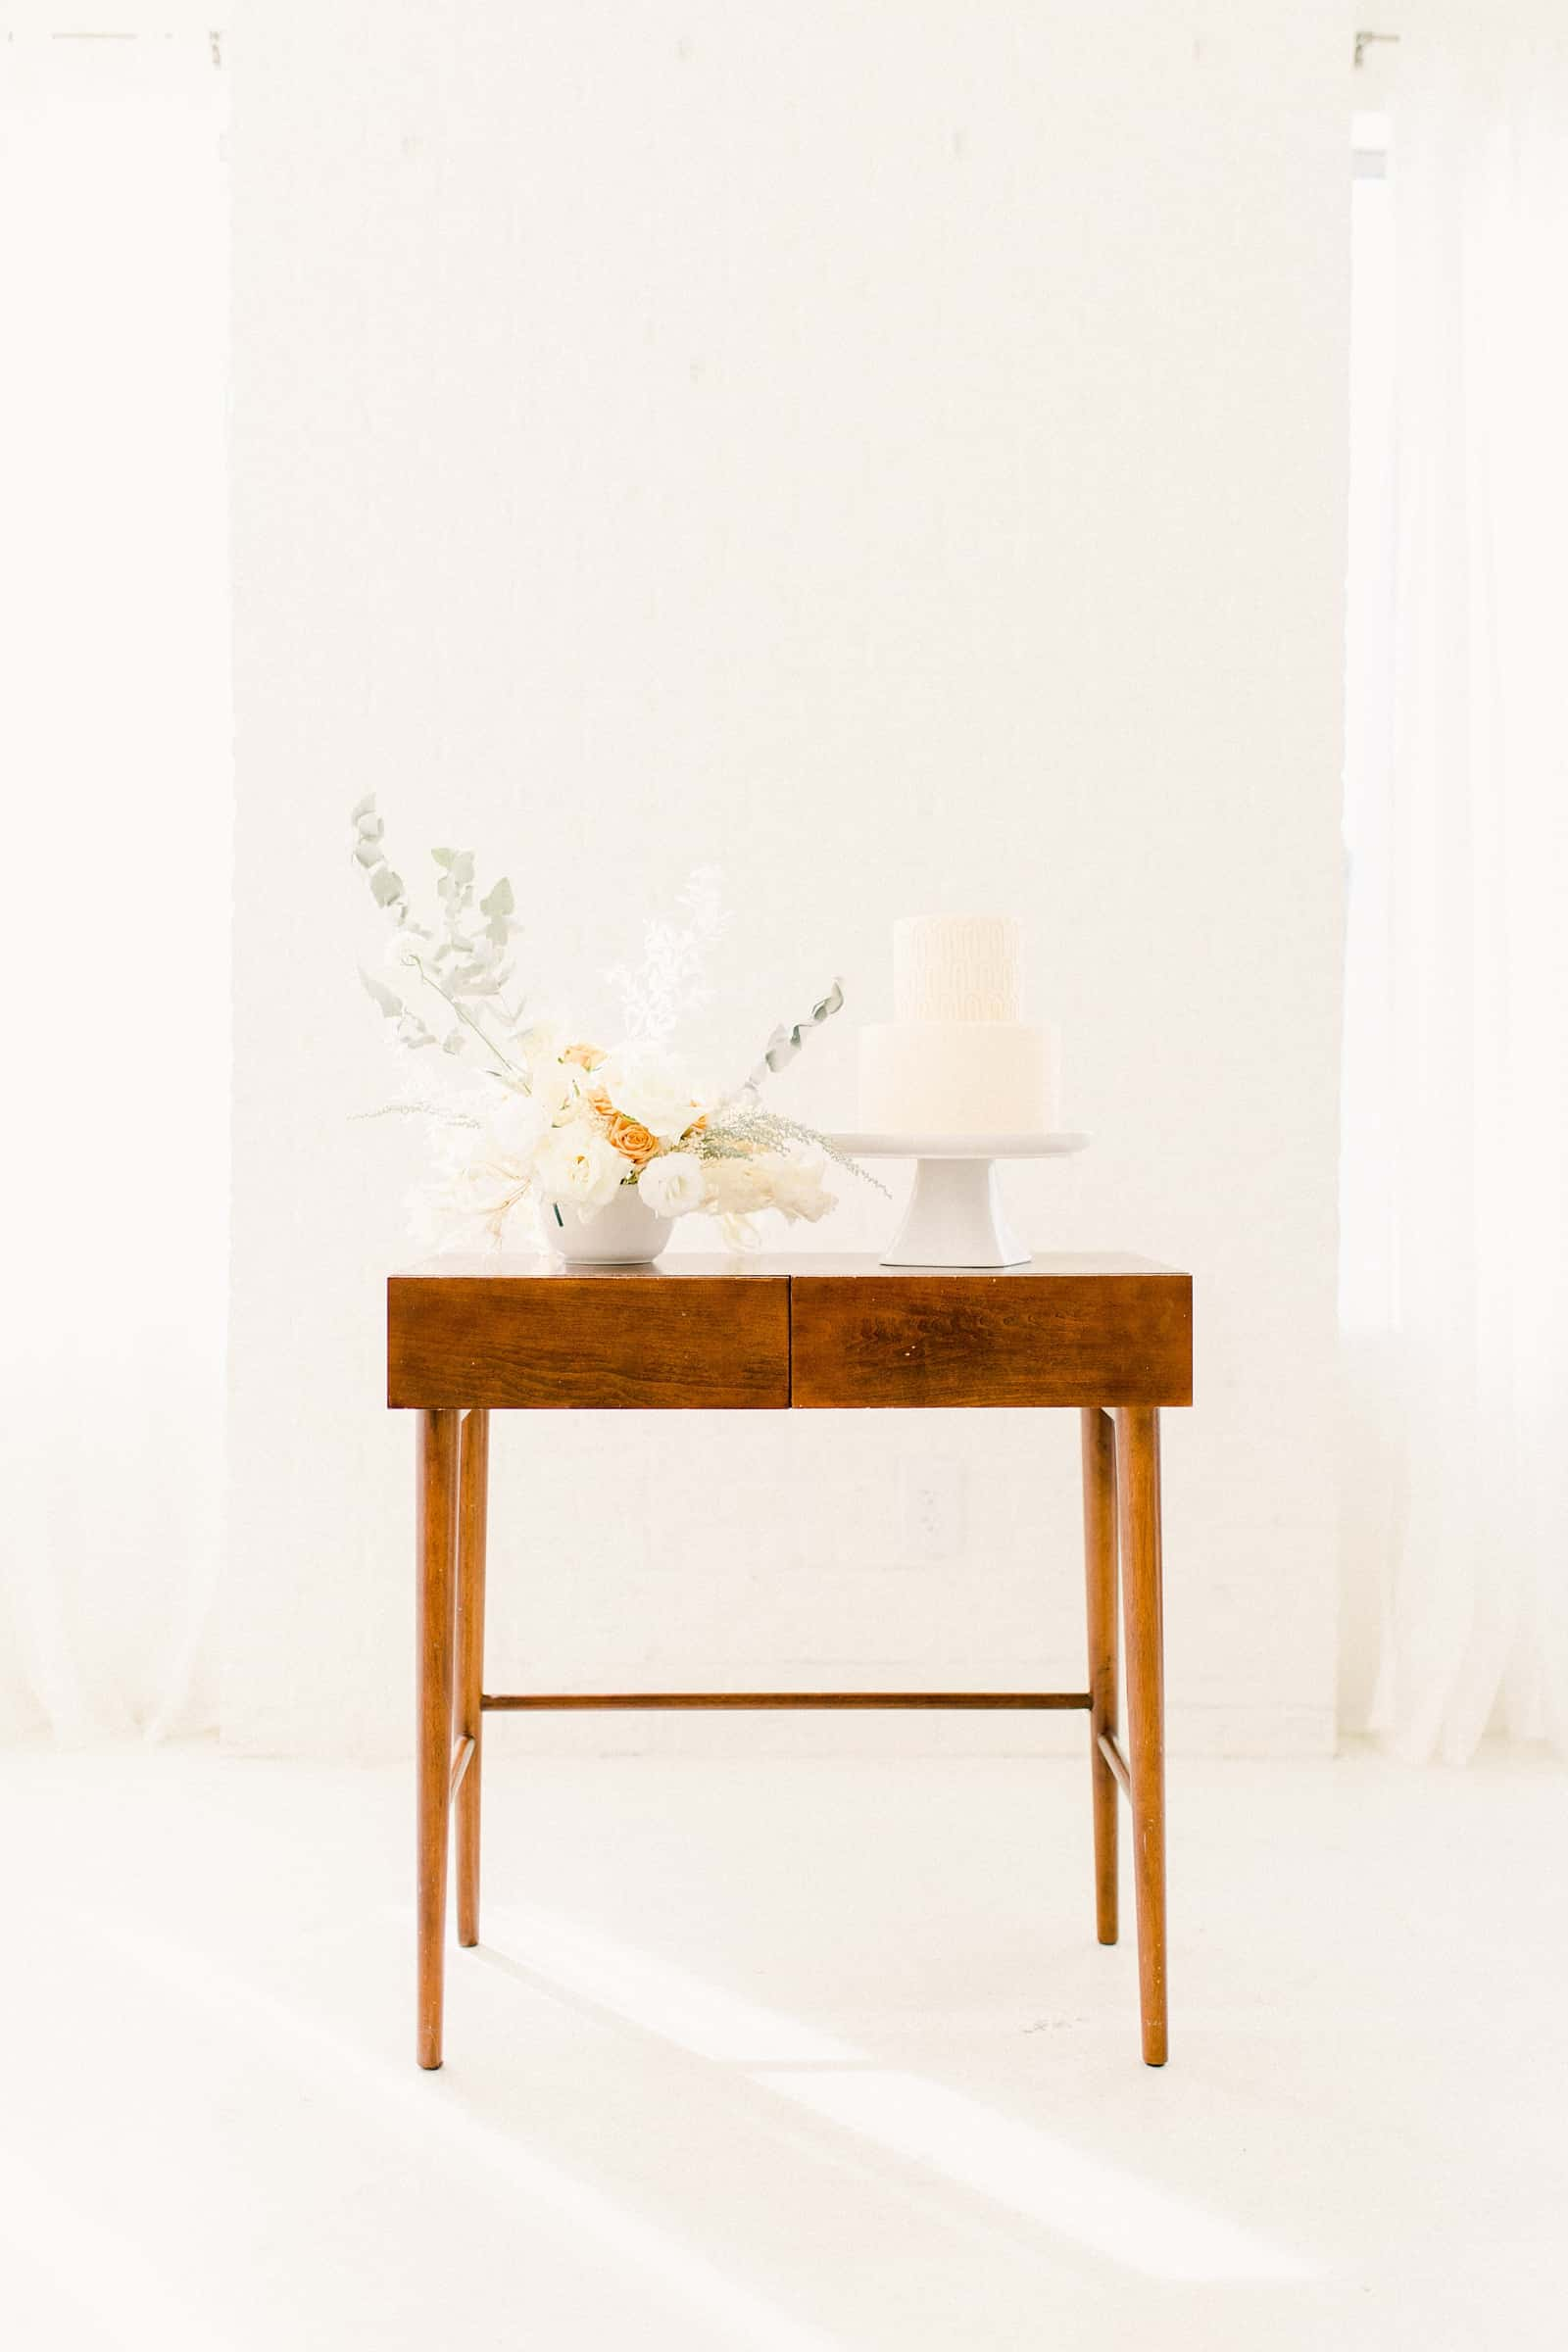 Modern wooden wedding cake table with minimalist neutral flowers